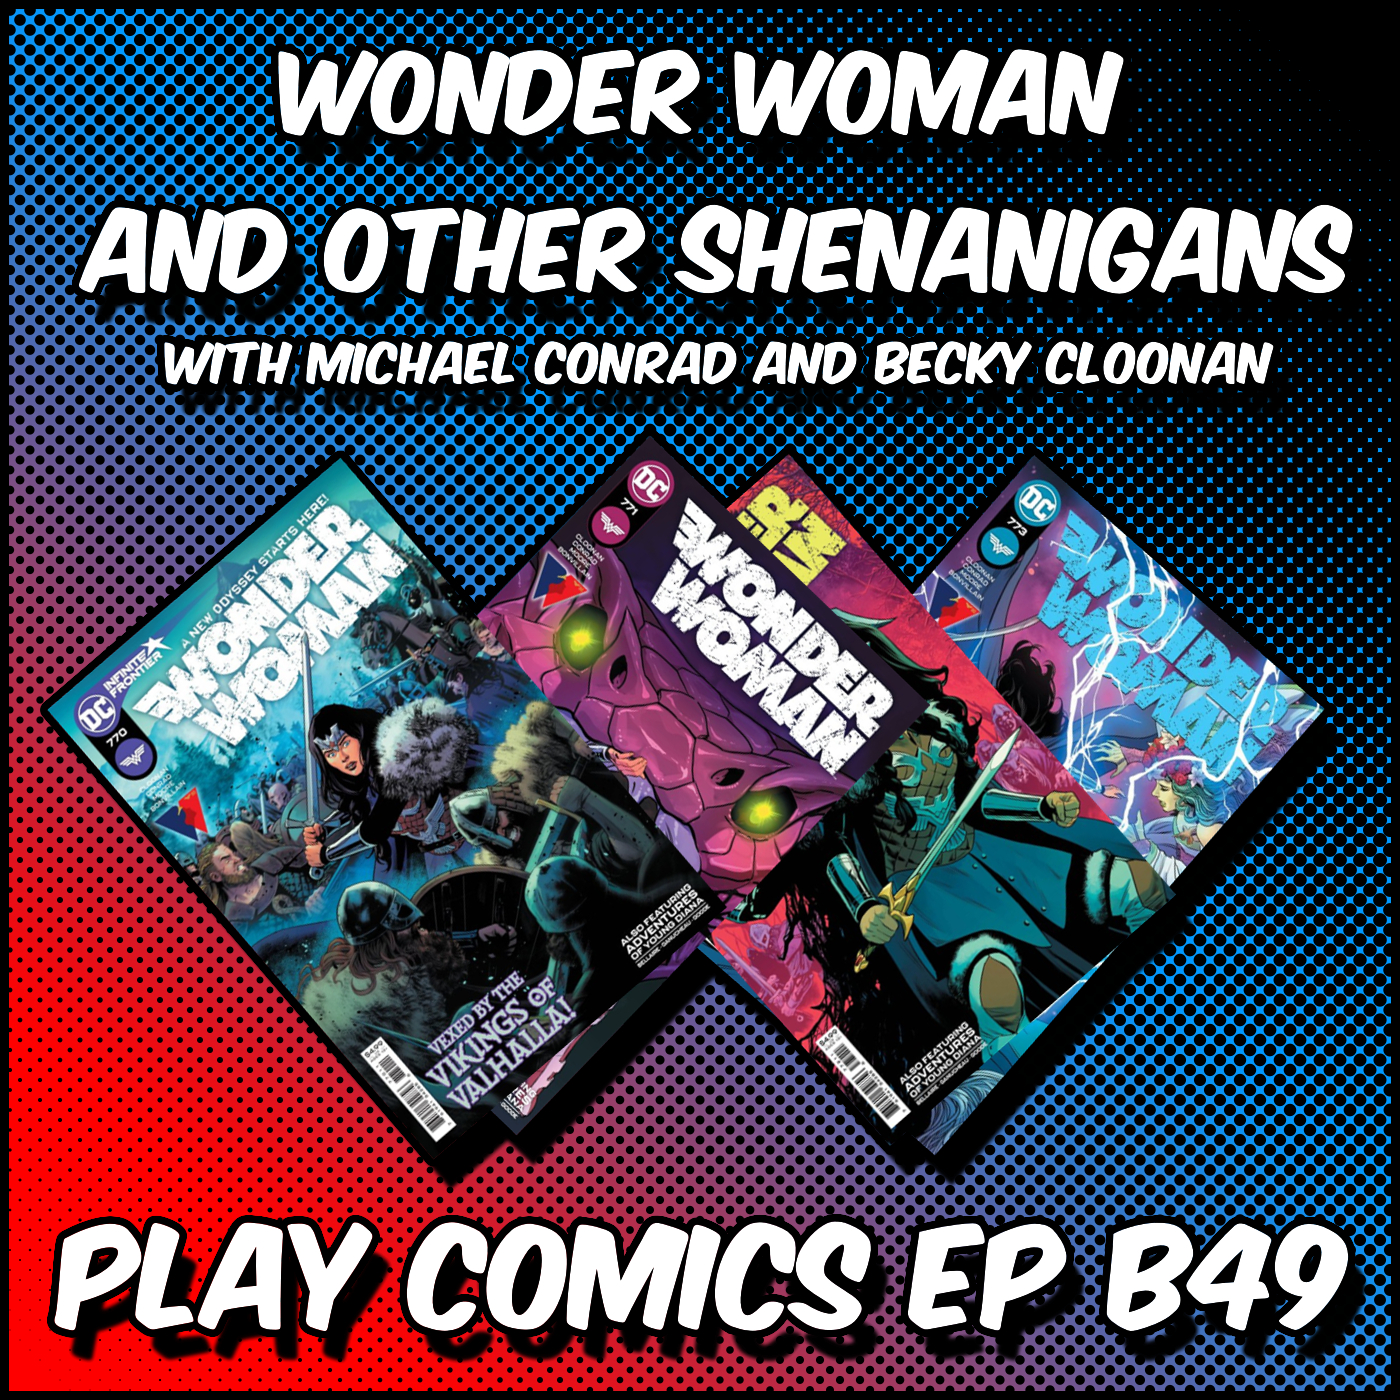 Wonder Woman with Michael Conrad and Becky Cloonan